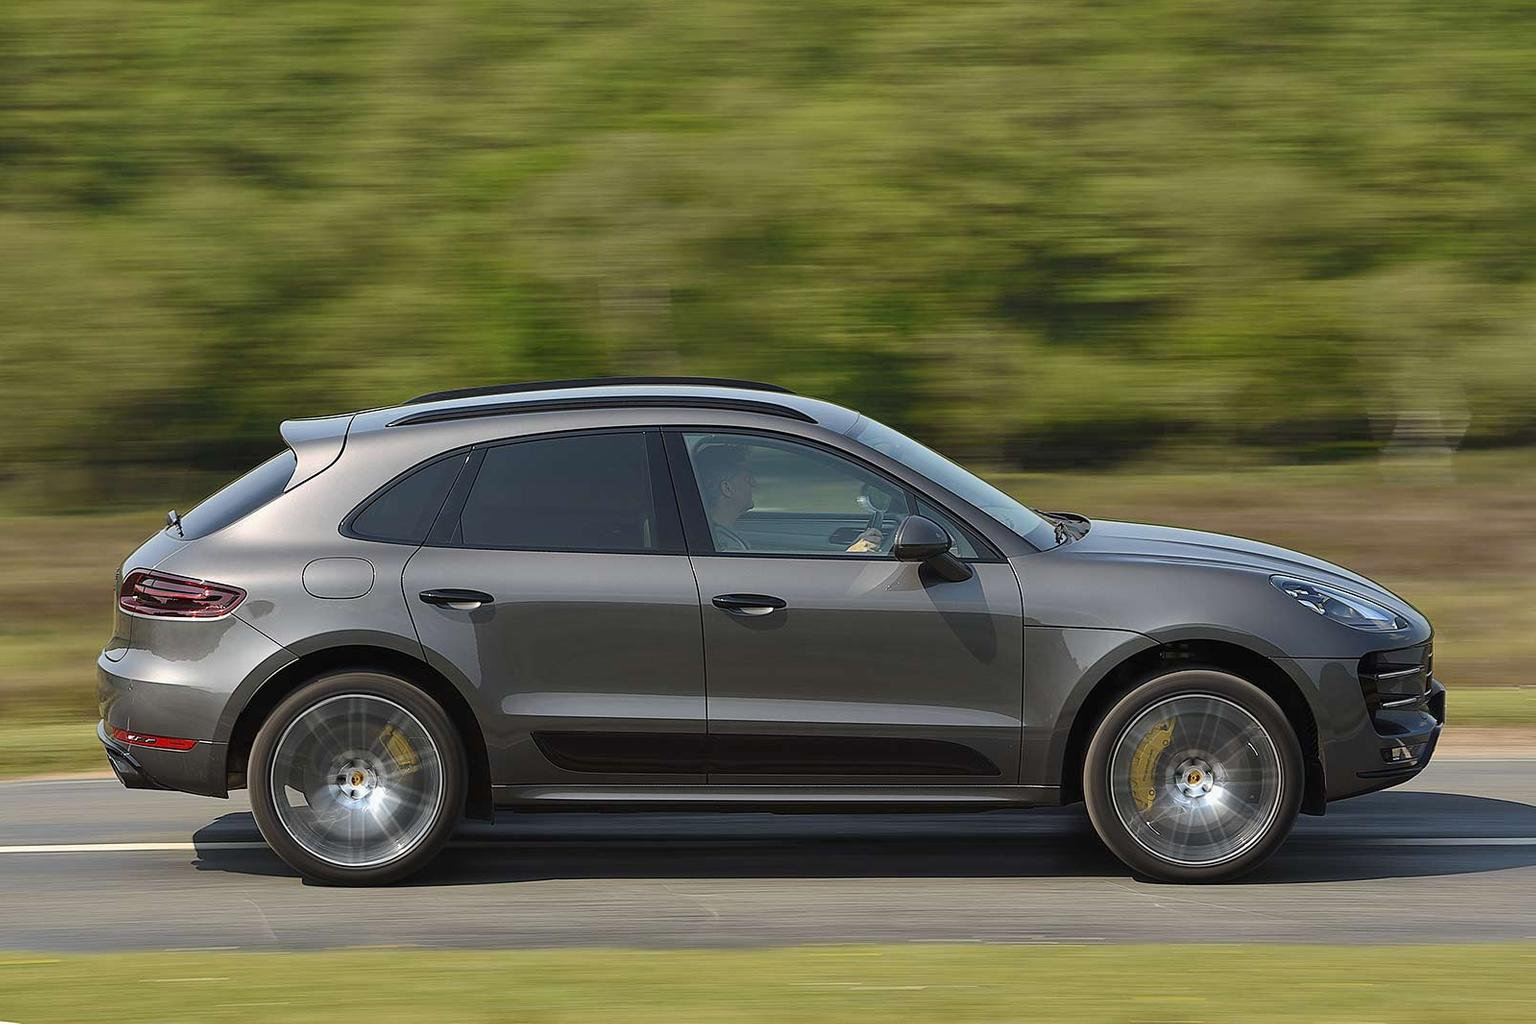 New Mercedes-AMG GLC vs Porsche Macan